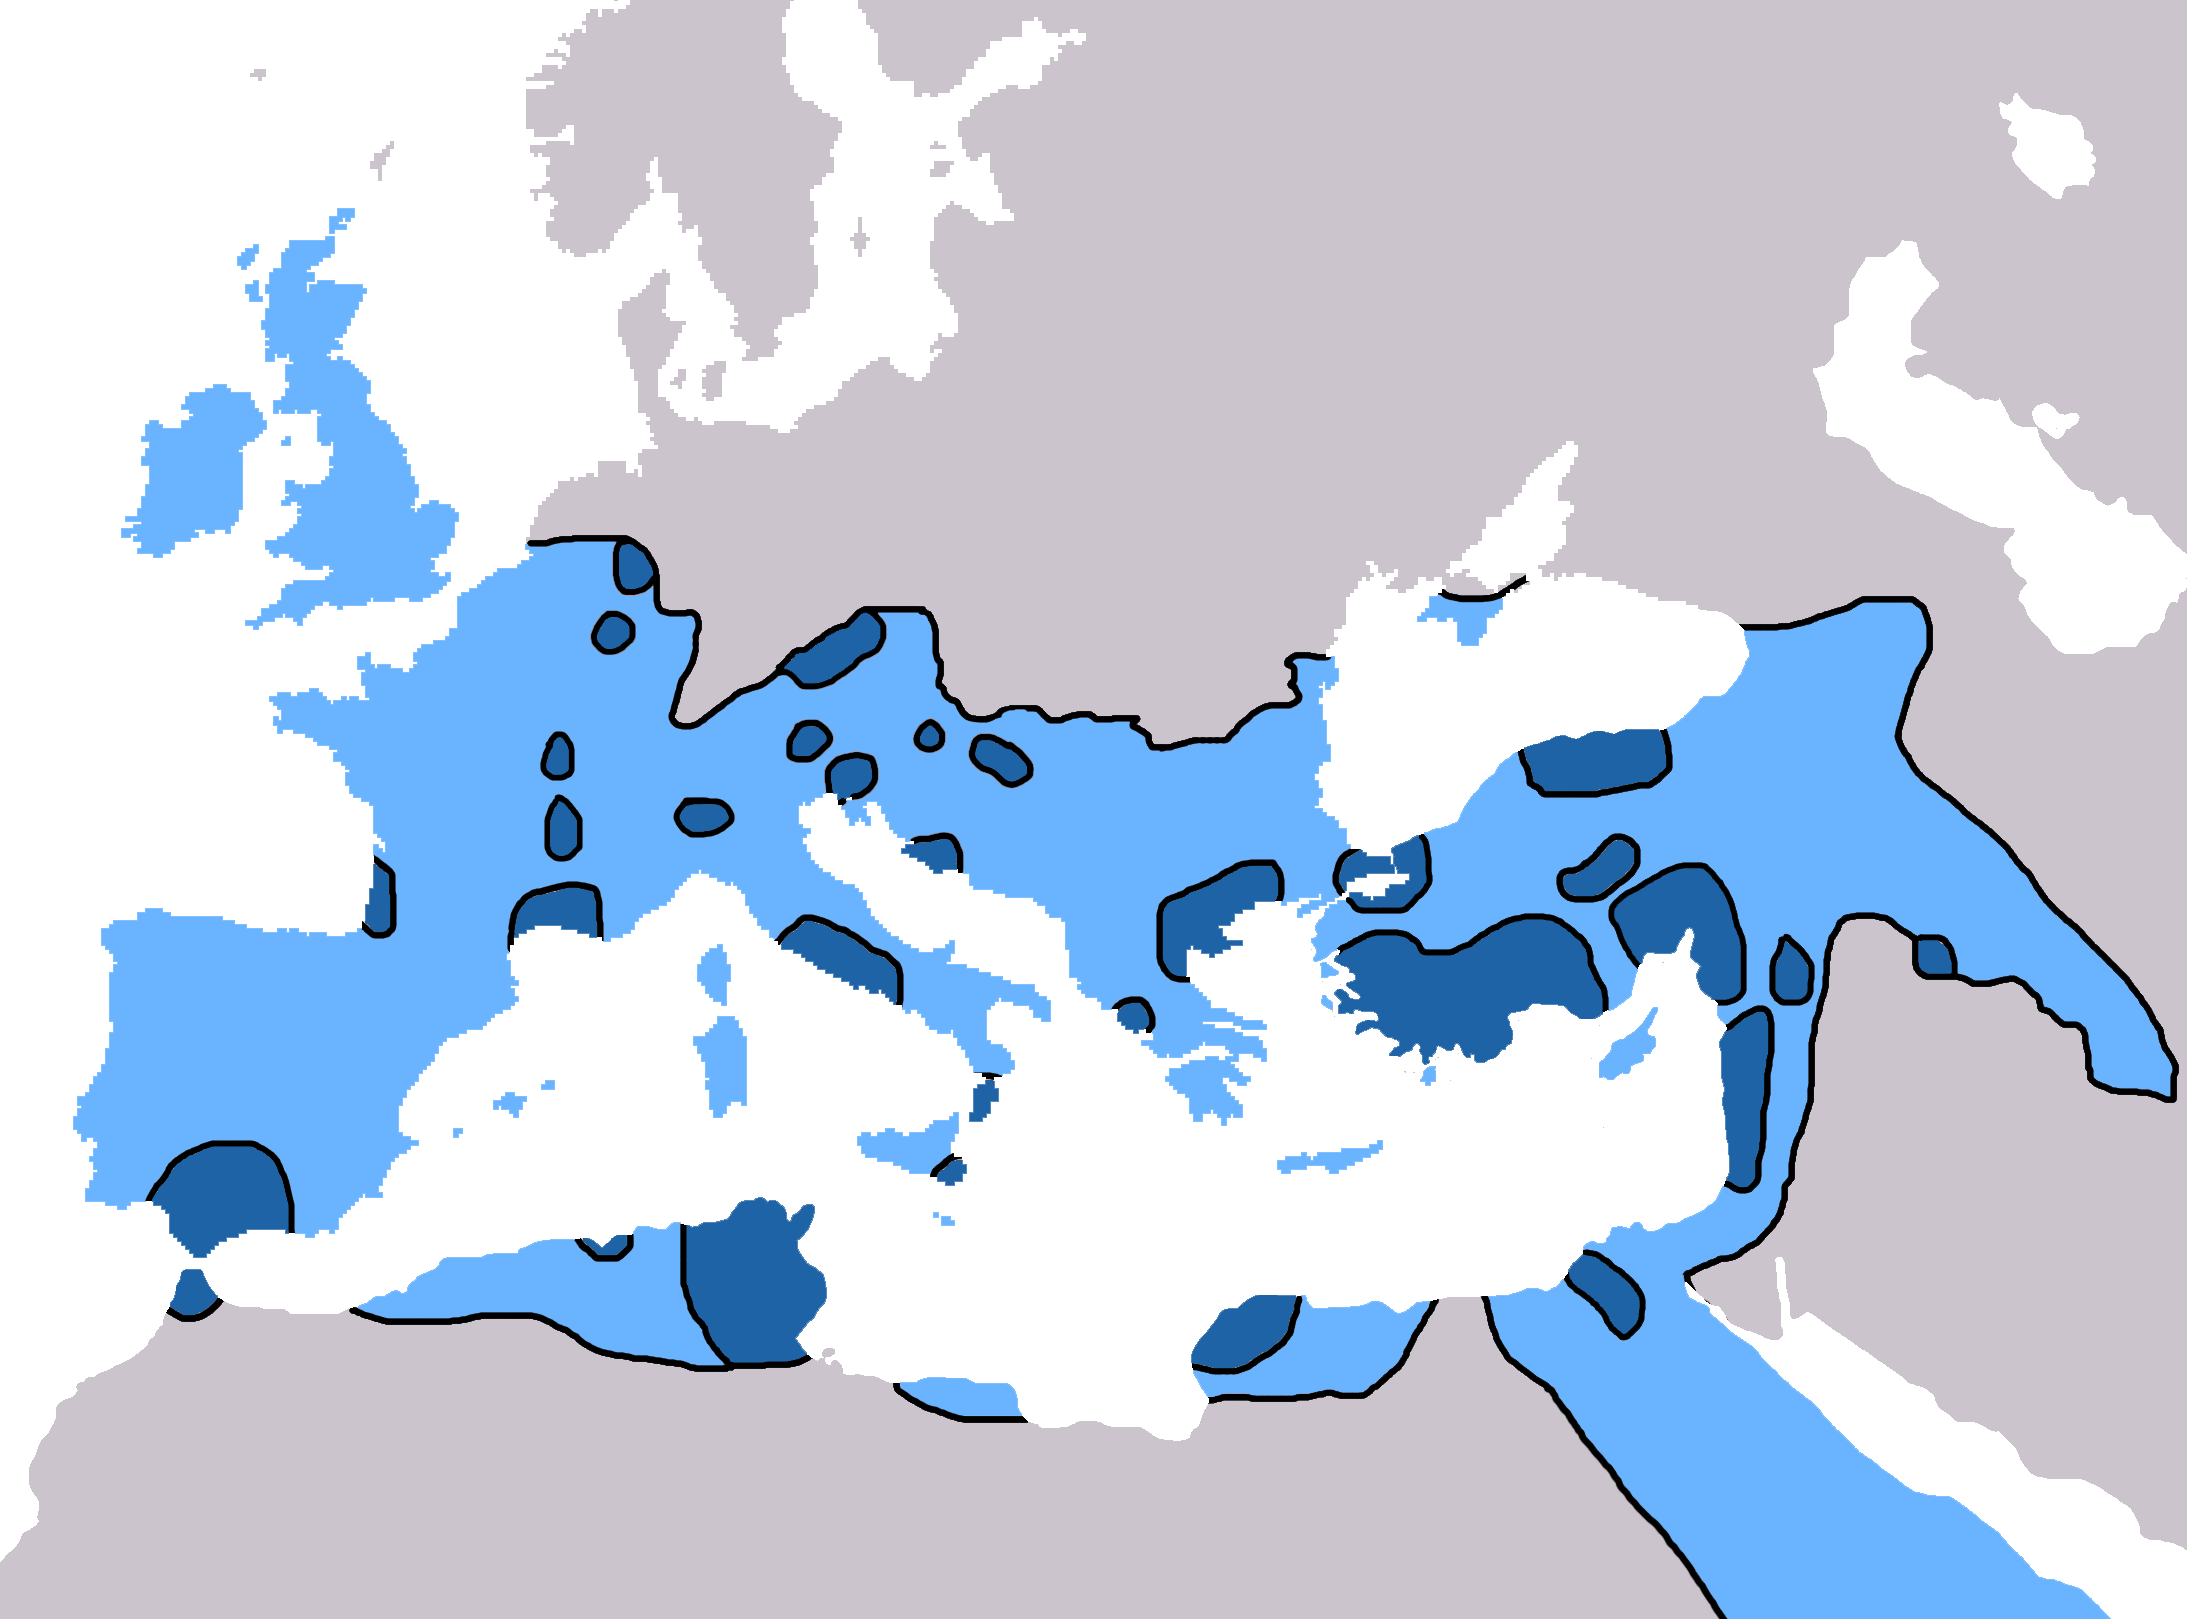 an insight to how christianity affected rome and medieval times After the fall of the western roman empire, the spread of christianity in europe began it was aided by christian groups and institutions that promoted christian beliefs among the most important with a monasteries, or places where people could dedicate their lives to prayer and meditation.